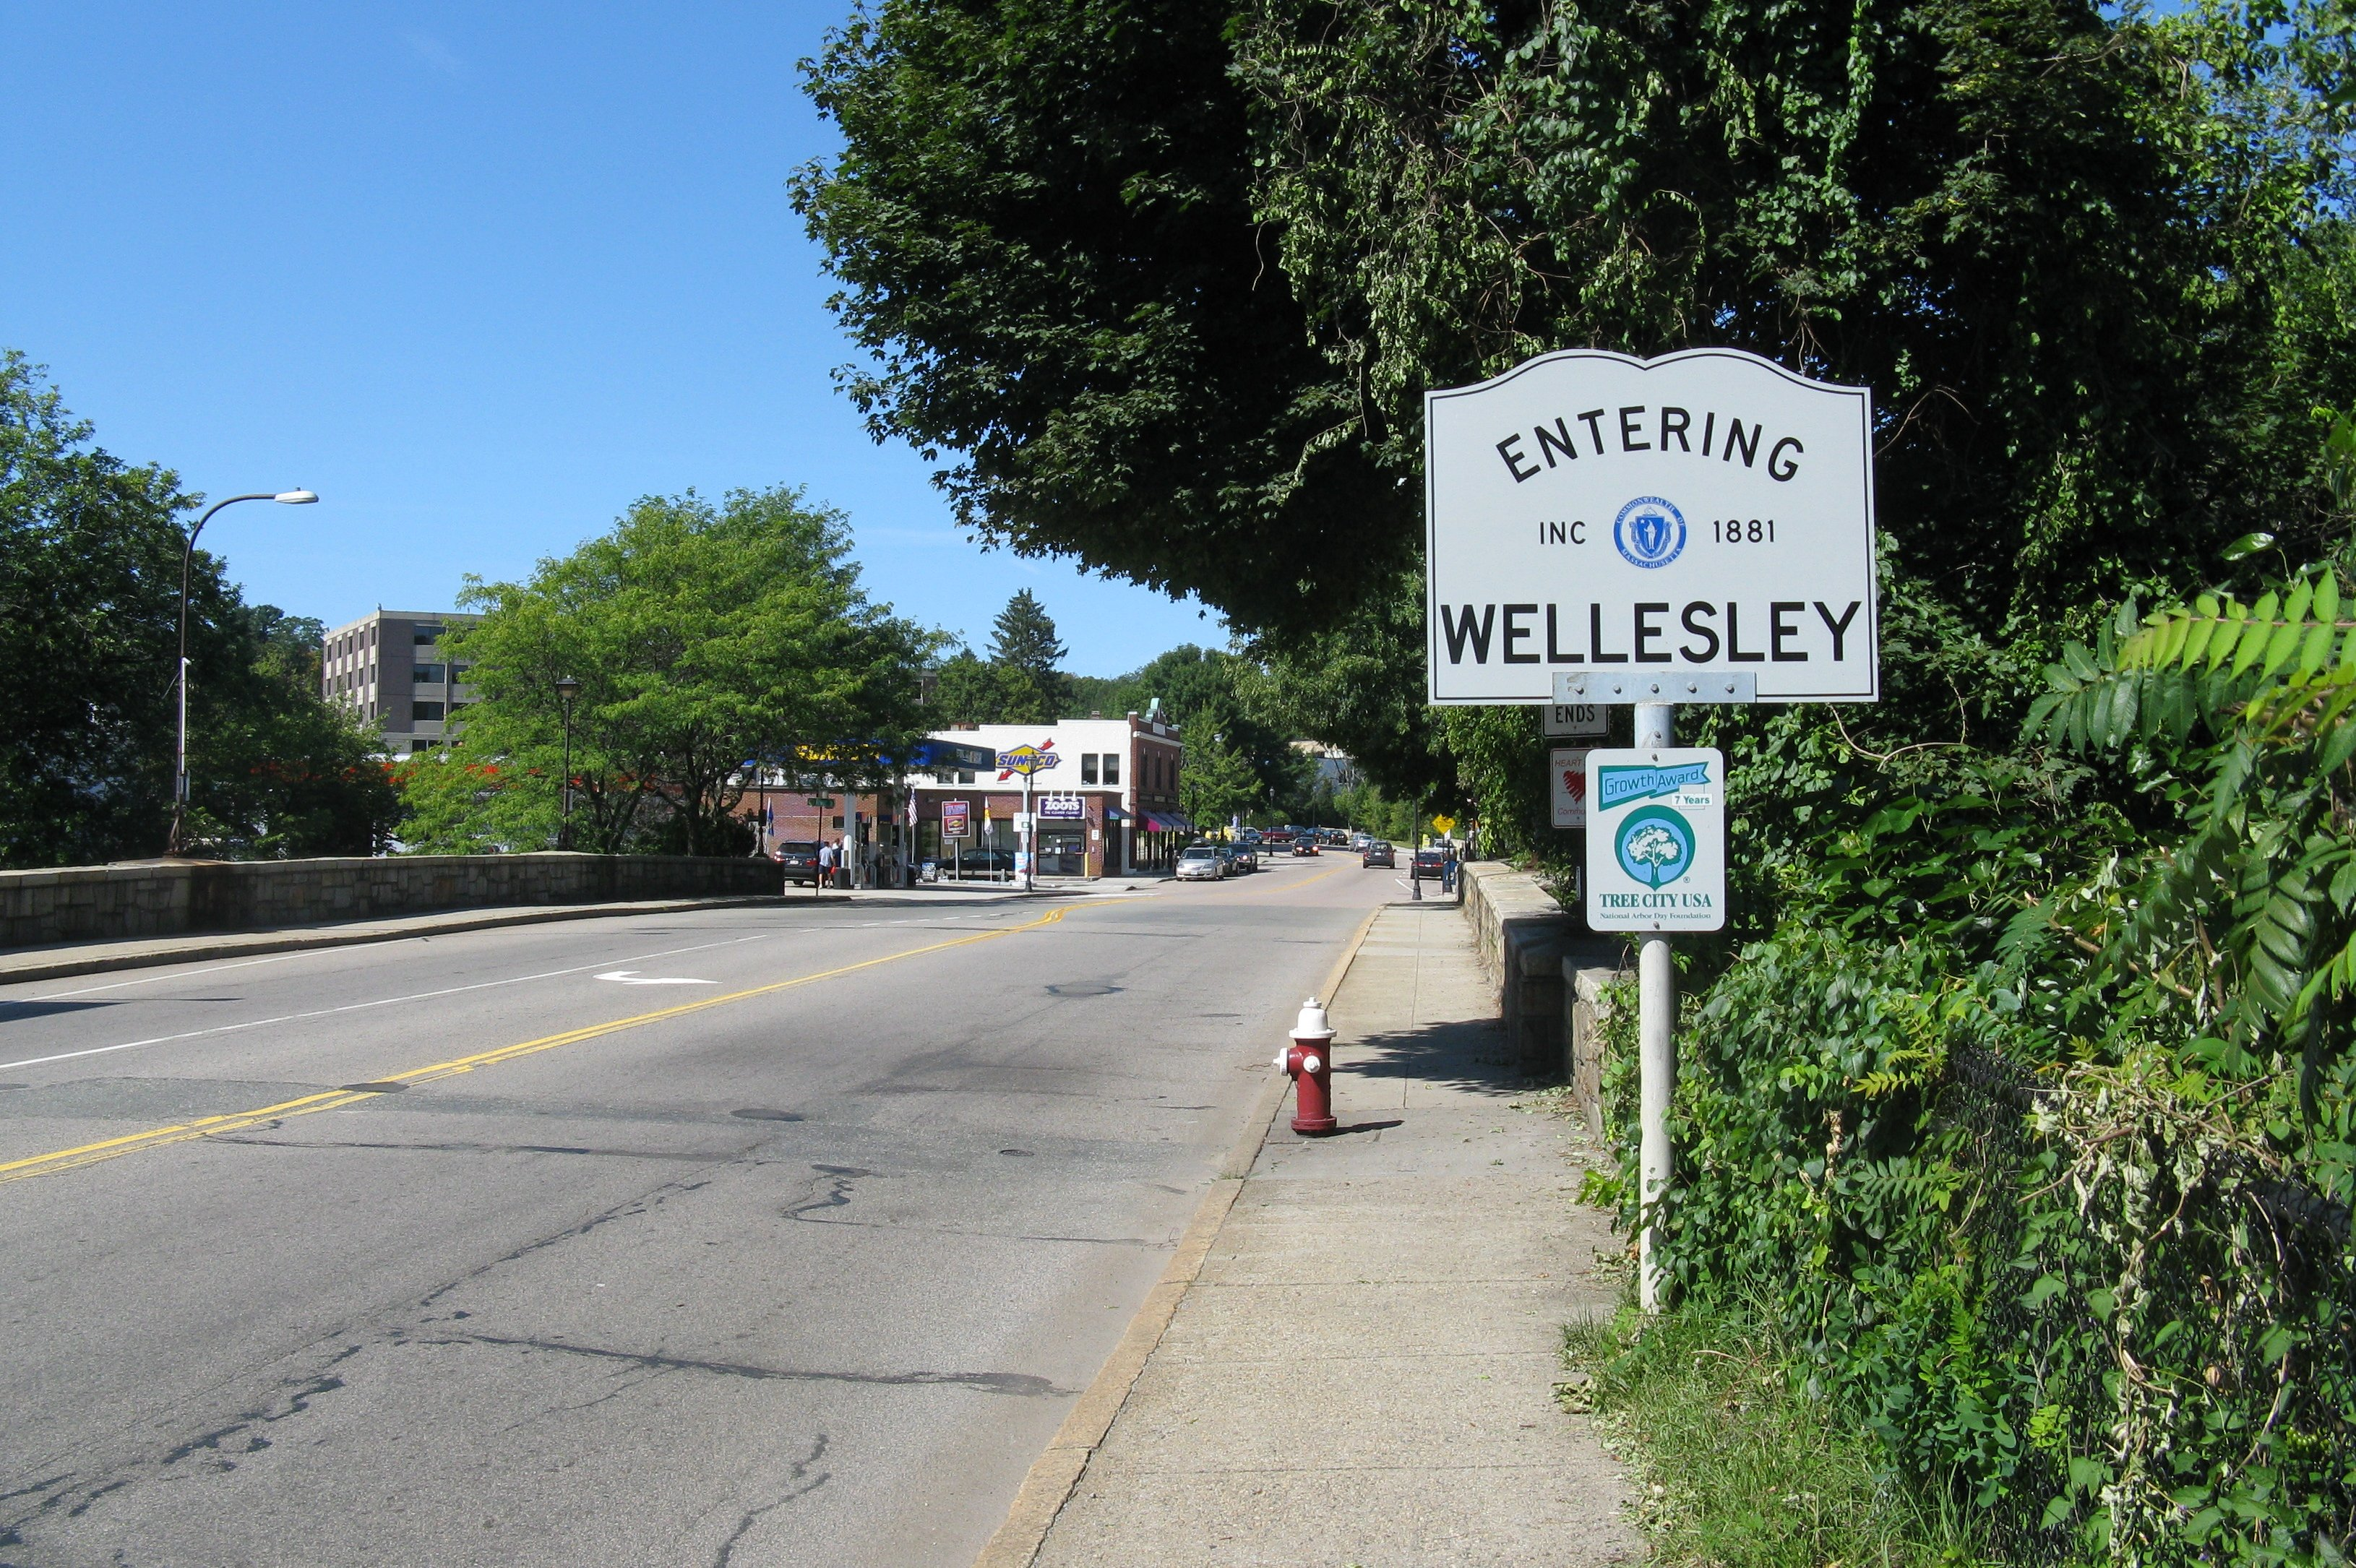 Wellesley /wlzli/ is a town in Norfolk County, Massachusetts. It is part of Greater Boston. It has one of the highest median household and family incomes in Massachusetts. There are many shopping options in Wellesley, such as fashion stores, flower shops and jewelers, suggesting that there is.